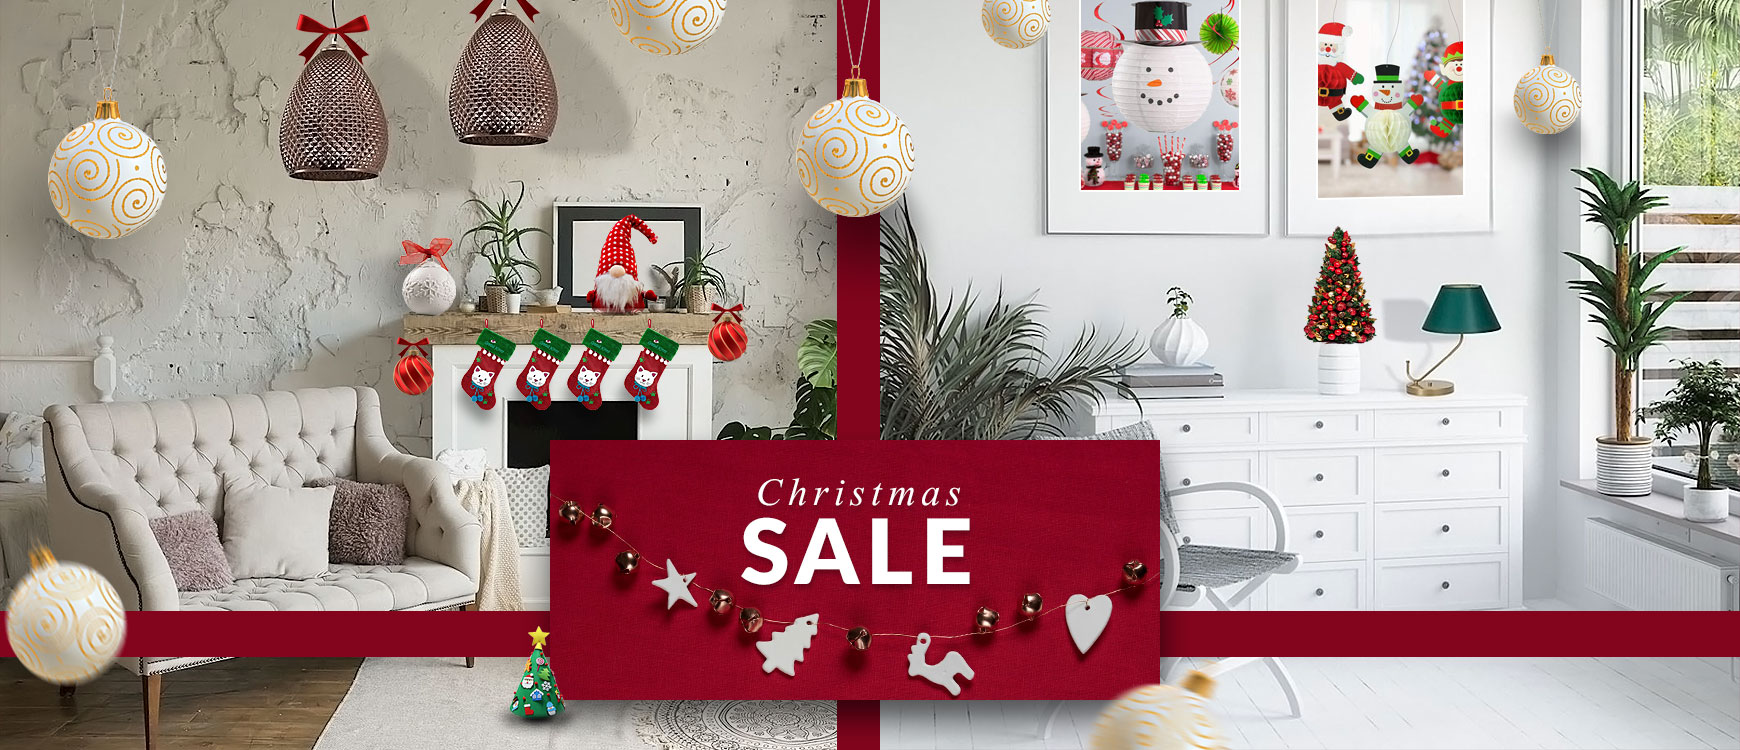 Luxury Chandelier - Christmas Sale